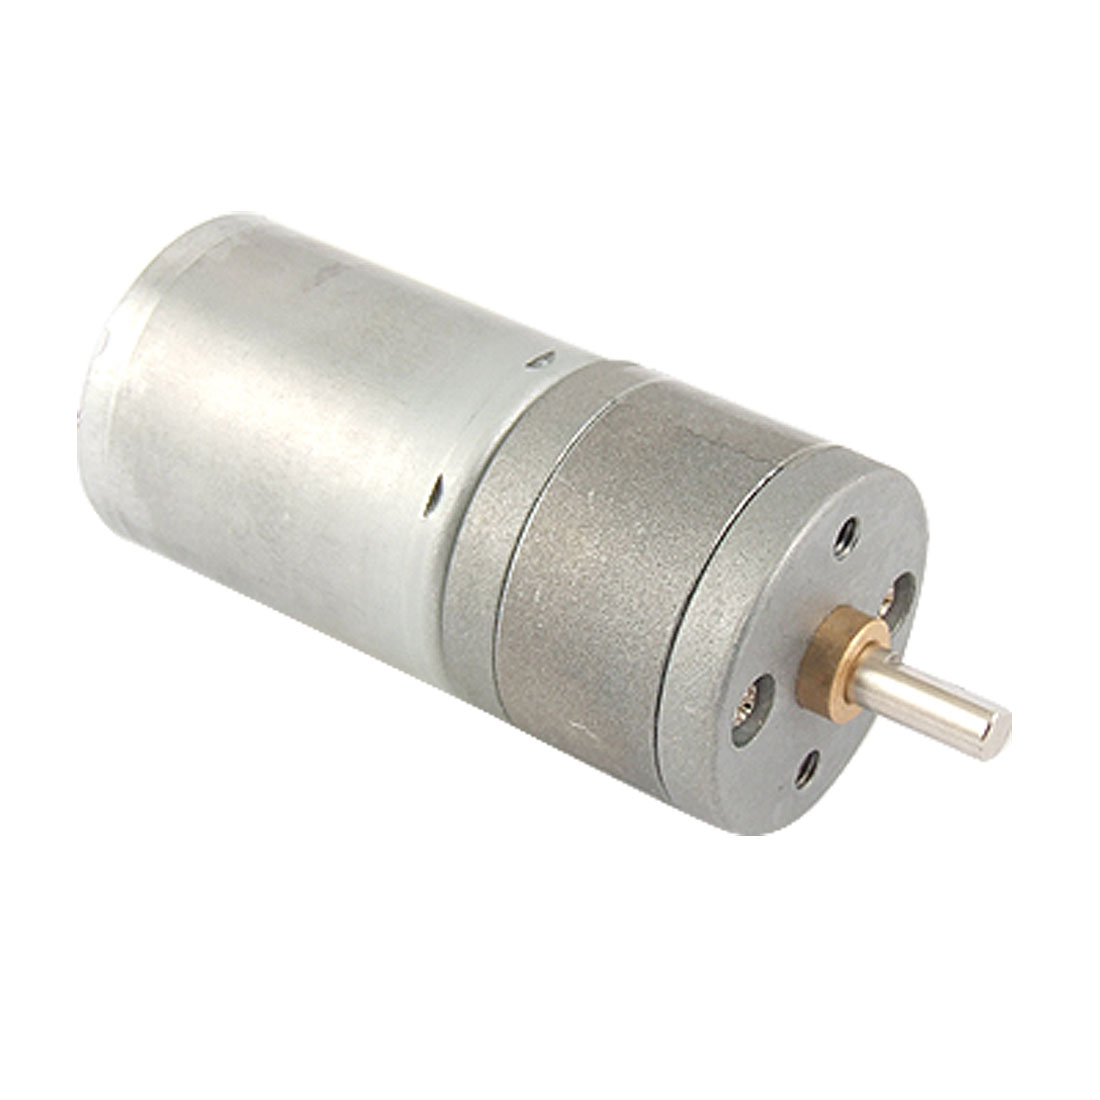 Electric 25mm Gearbox 4mm Metal Shaft DC12V 40-50mA 300RPM Gear Motor